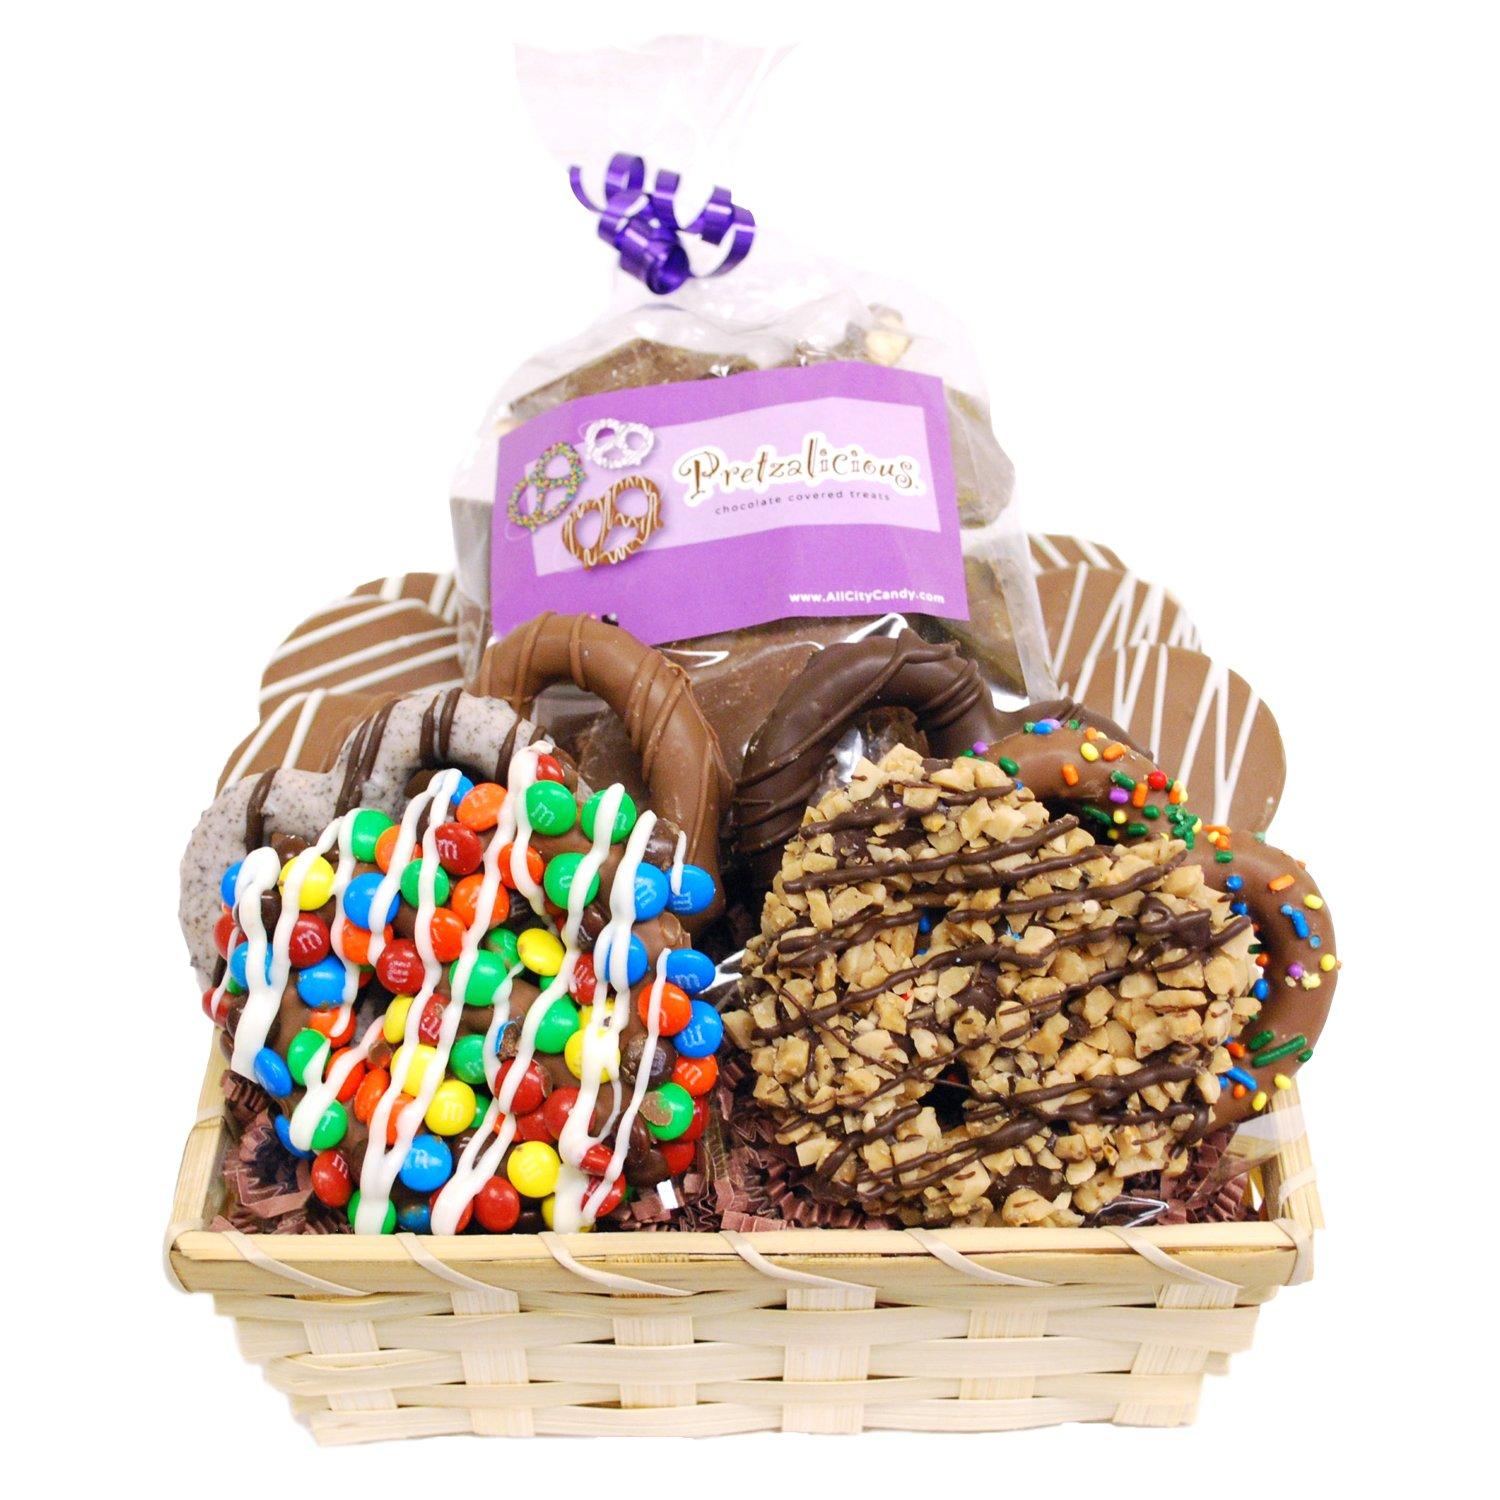 Dreamy Delight Gourmet Chocolate Covered Pretzels and Cookies Basket by All City Candy